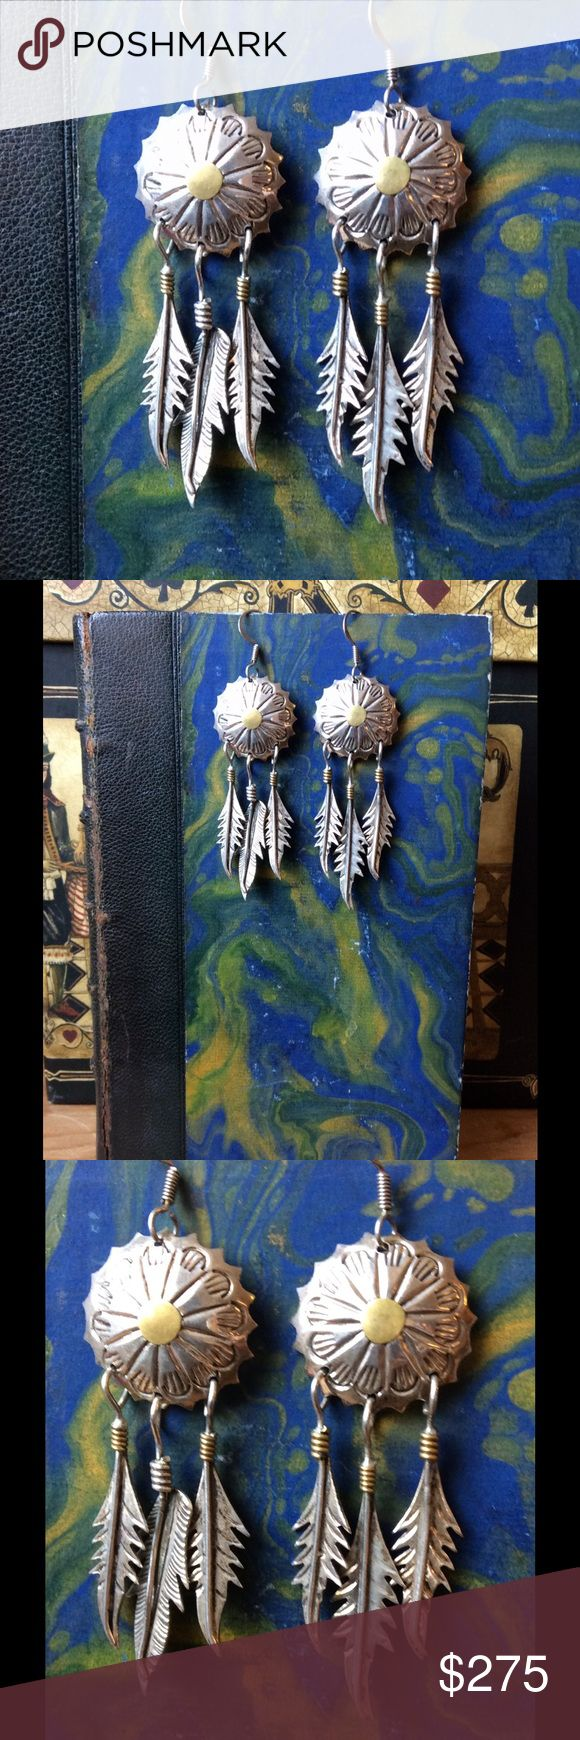 Vintage Taxco 925 Signed TS-79 Boho Feather Conch RARE HTF sought after, Modernist Vintage Taxco 925 silver earrings. Signed TS-79 Juan Vasquez Sandoval also known as Two Trees. Vintage Jewelry Earrings